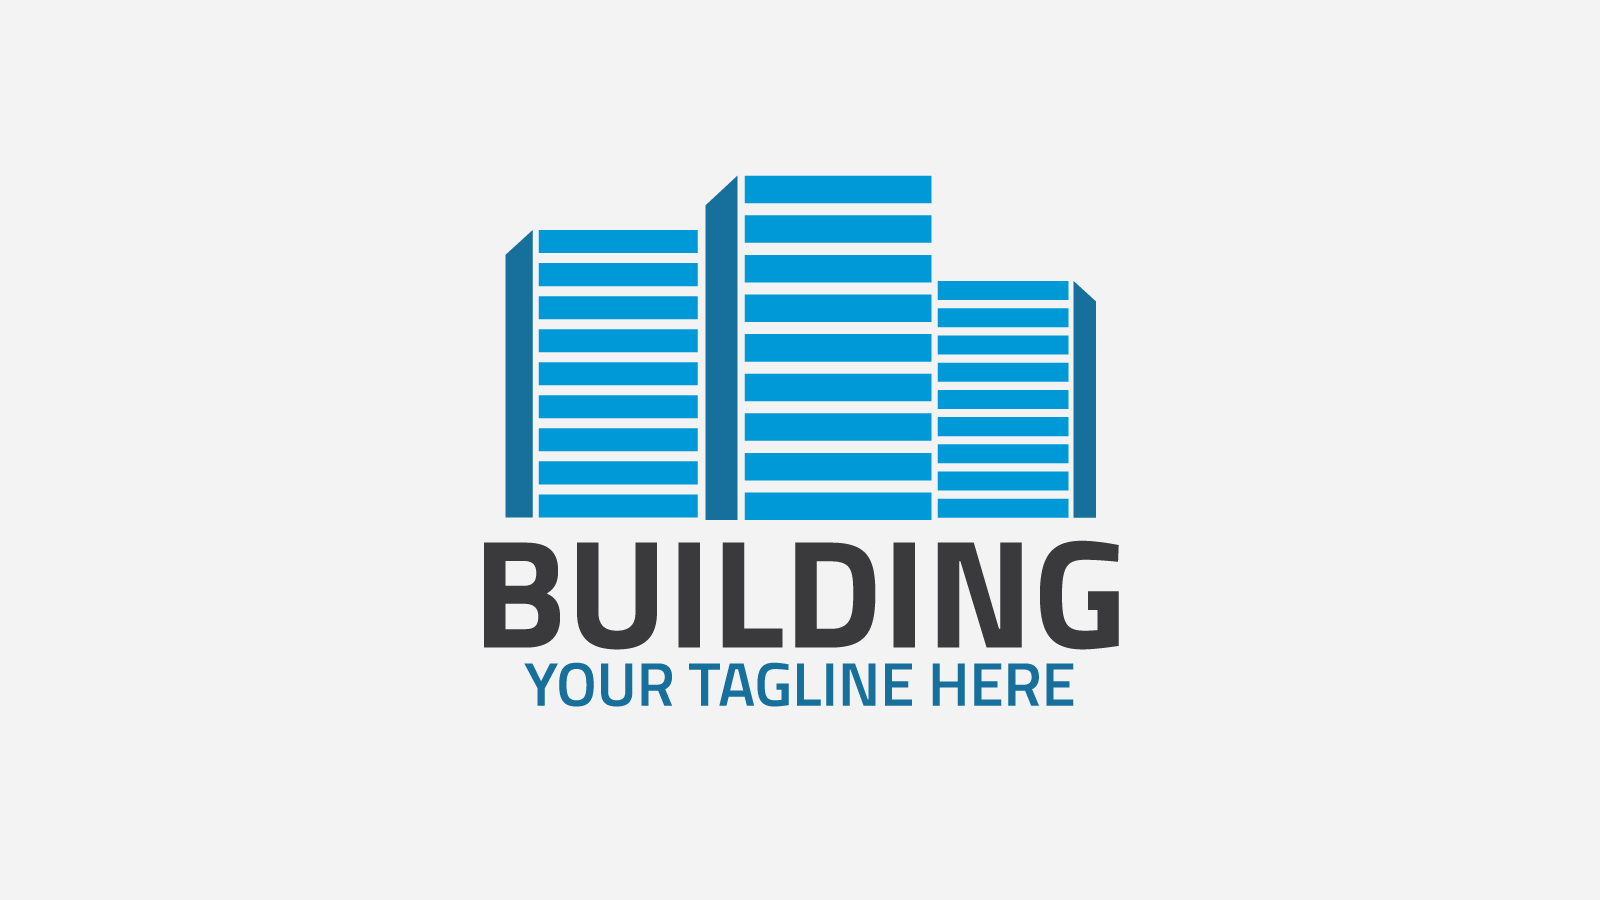 building free logo design zfreegraphic free vector logo downloads